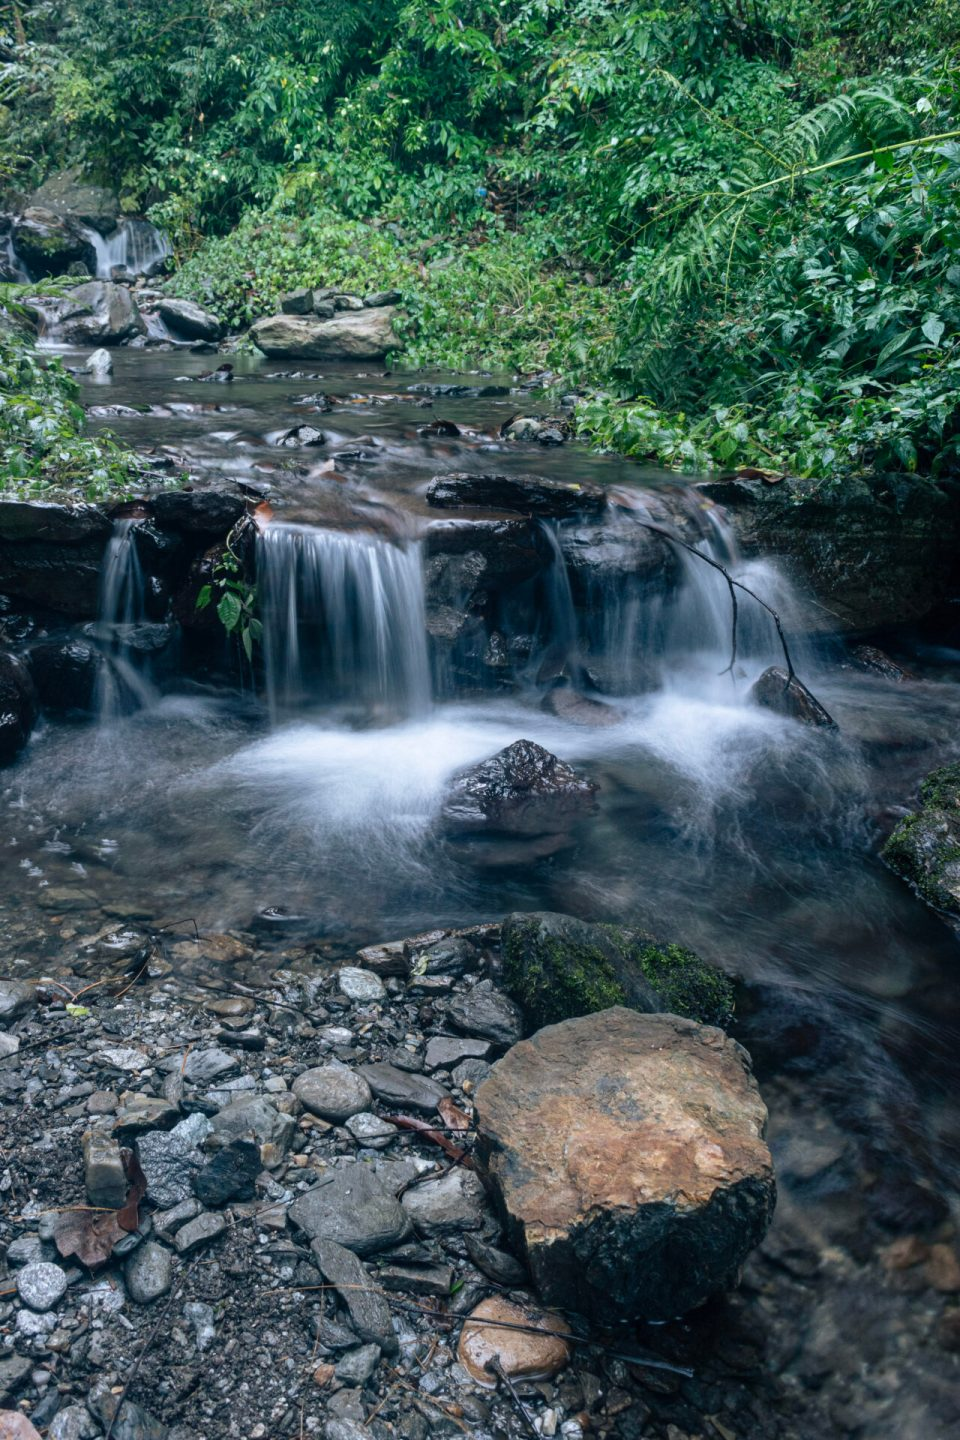 The long exposure shots of the water stream